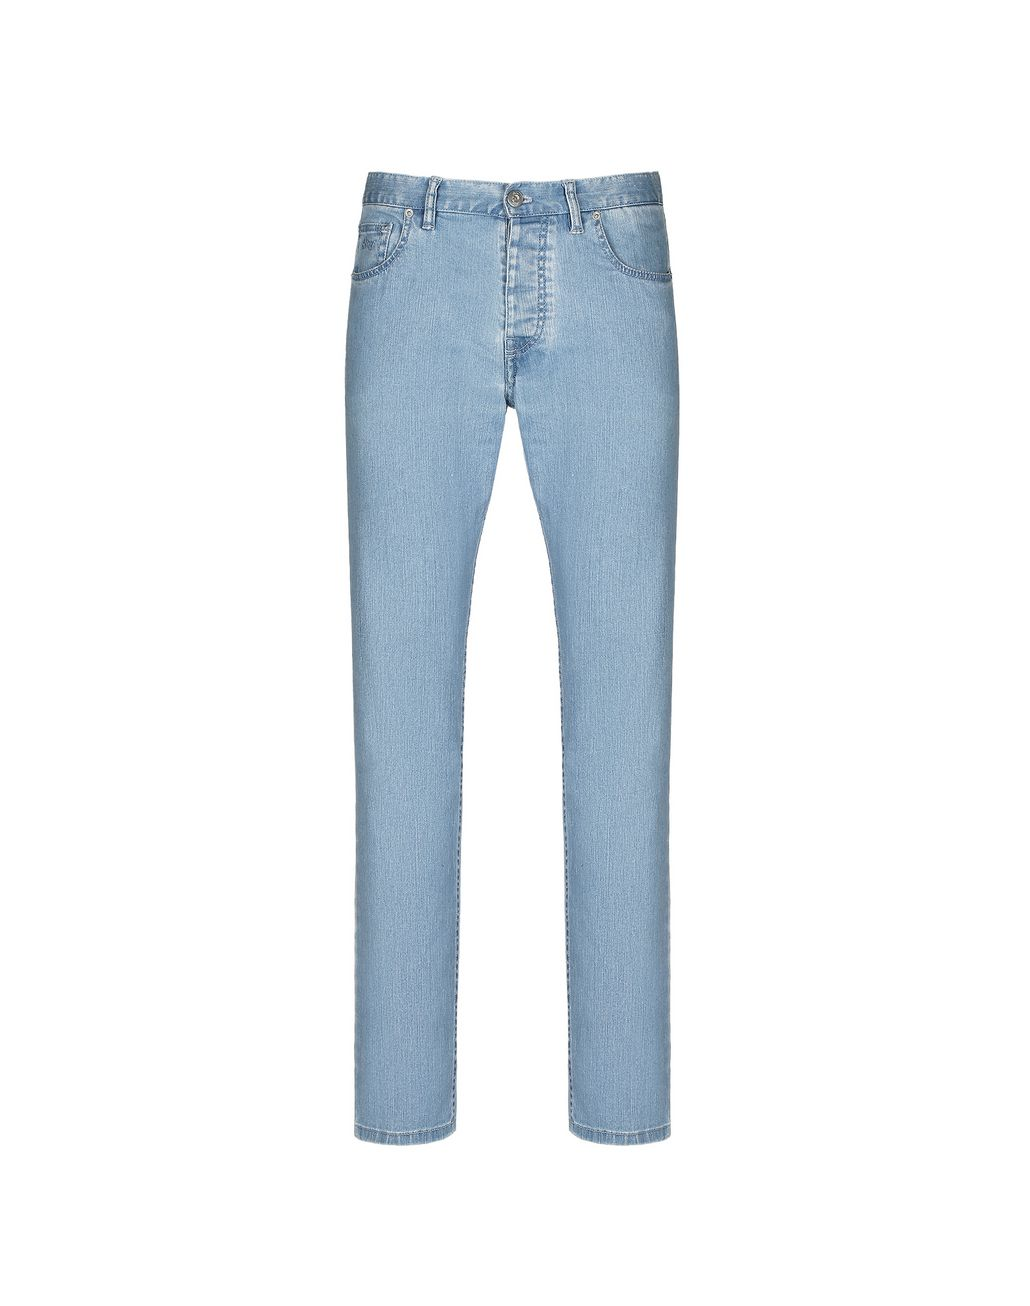 BRIONI  Light Blue Comfort Fit Jeans Trousers Man f